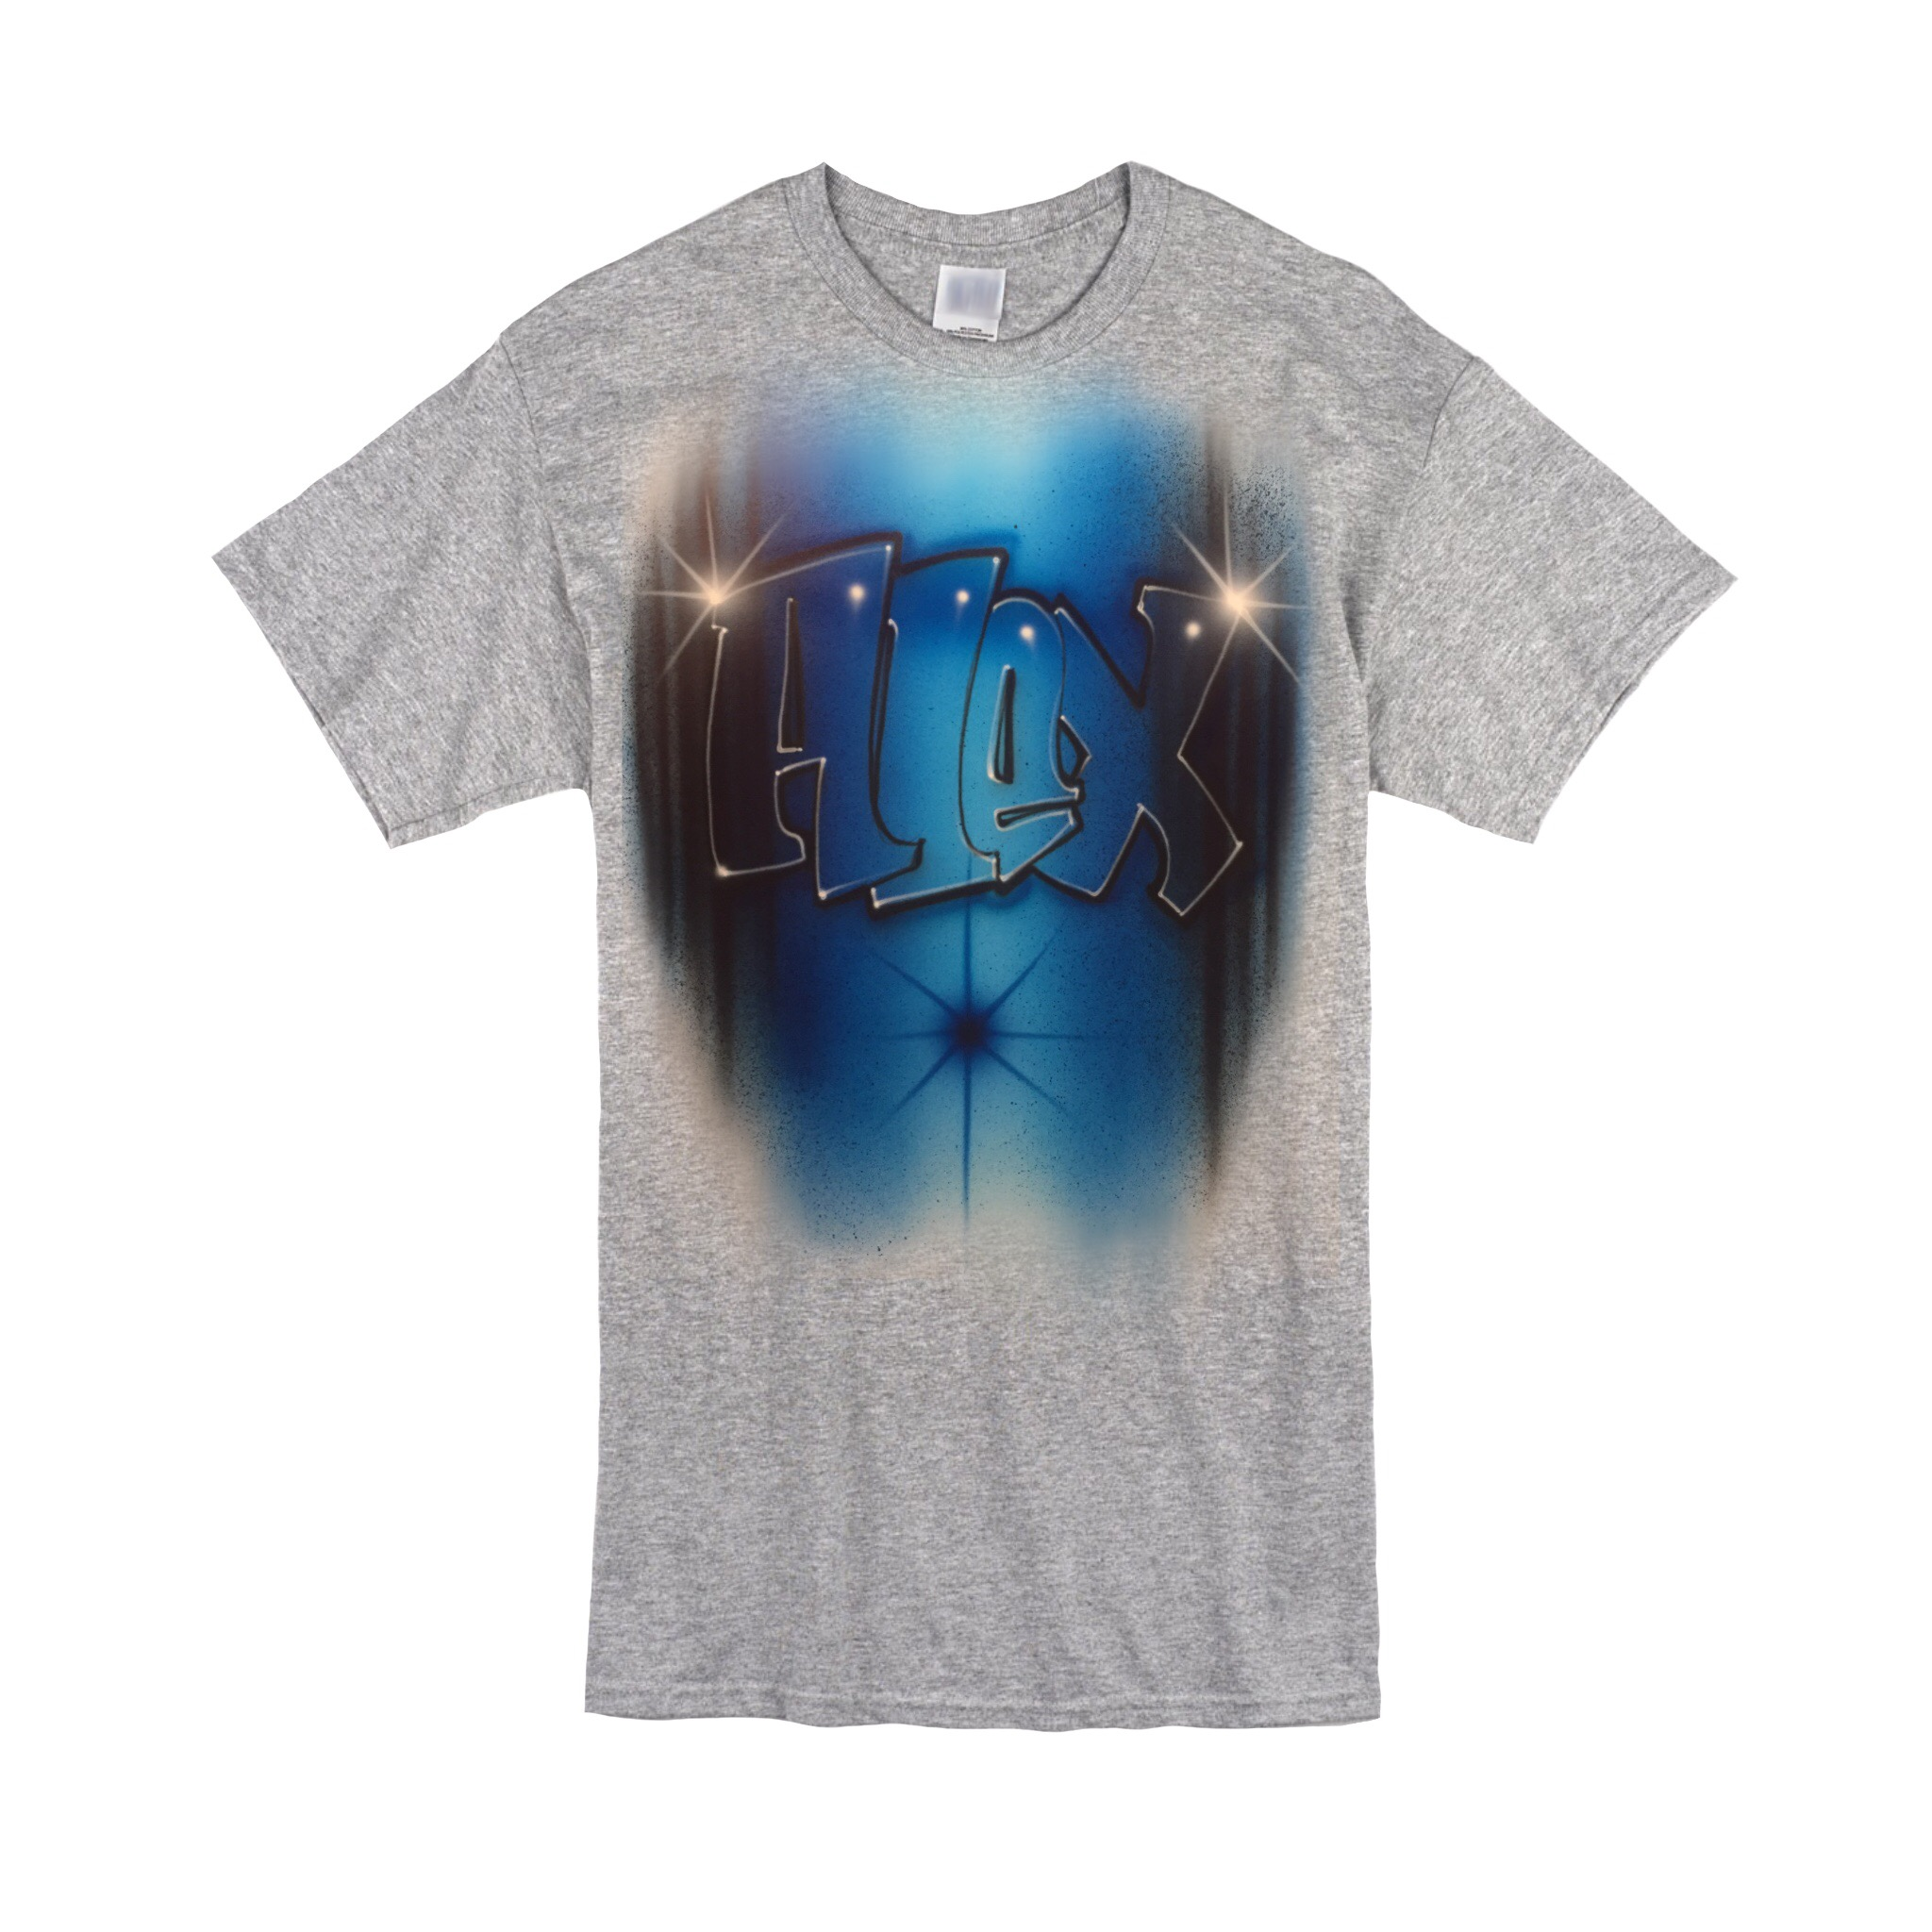 Graf block blues Tshirt